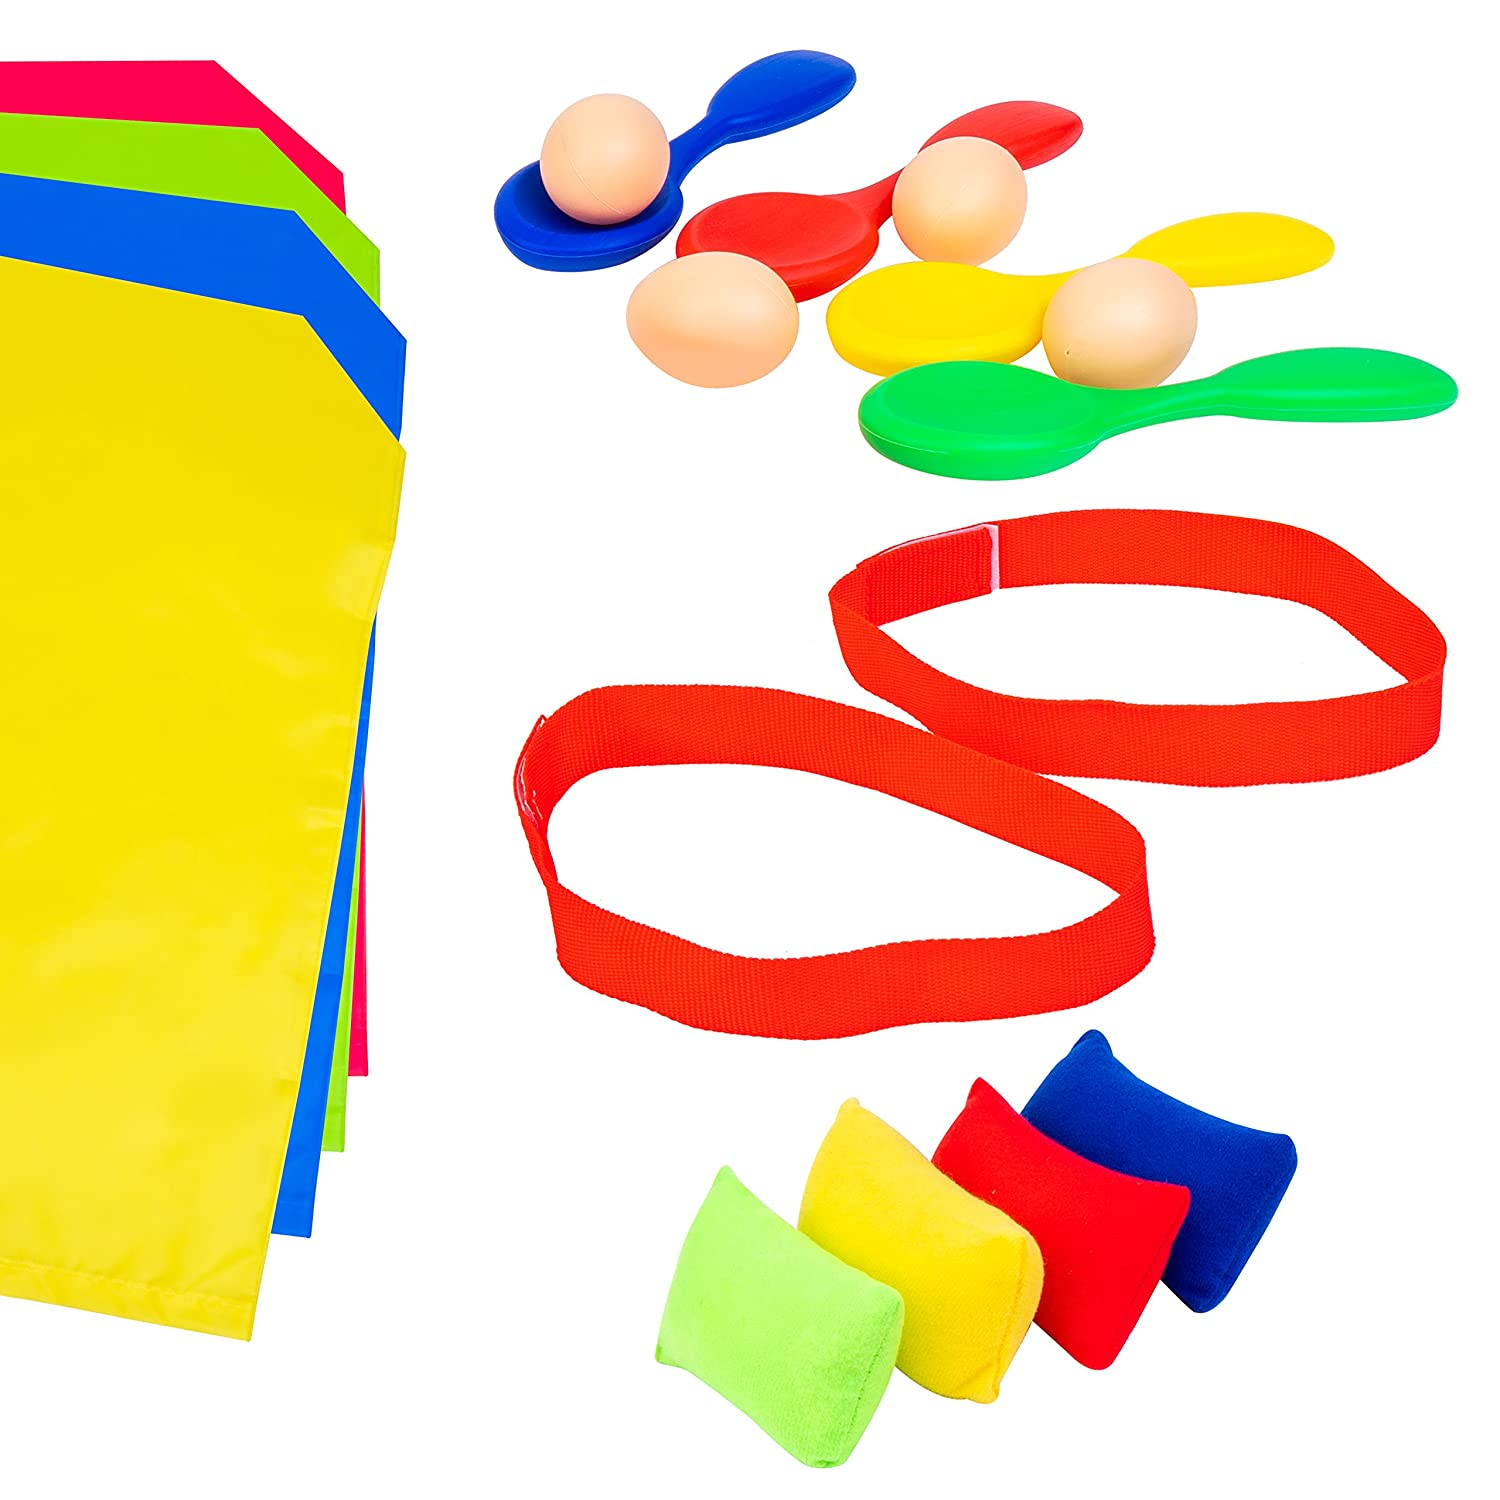 Voucchi Outdoor Birthday Party Games for Kids, Tested & Proven, Amazing Fun For All, 4 in 1 Favorites are Potato Sack Race, Egg & Spoon Race, 3 Legged Race & Bean Bag Toss AlliJac